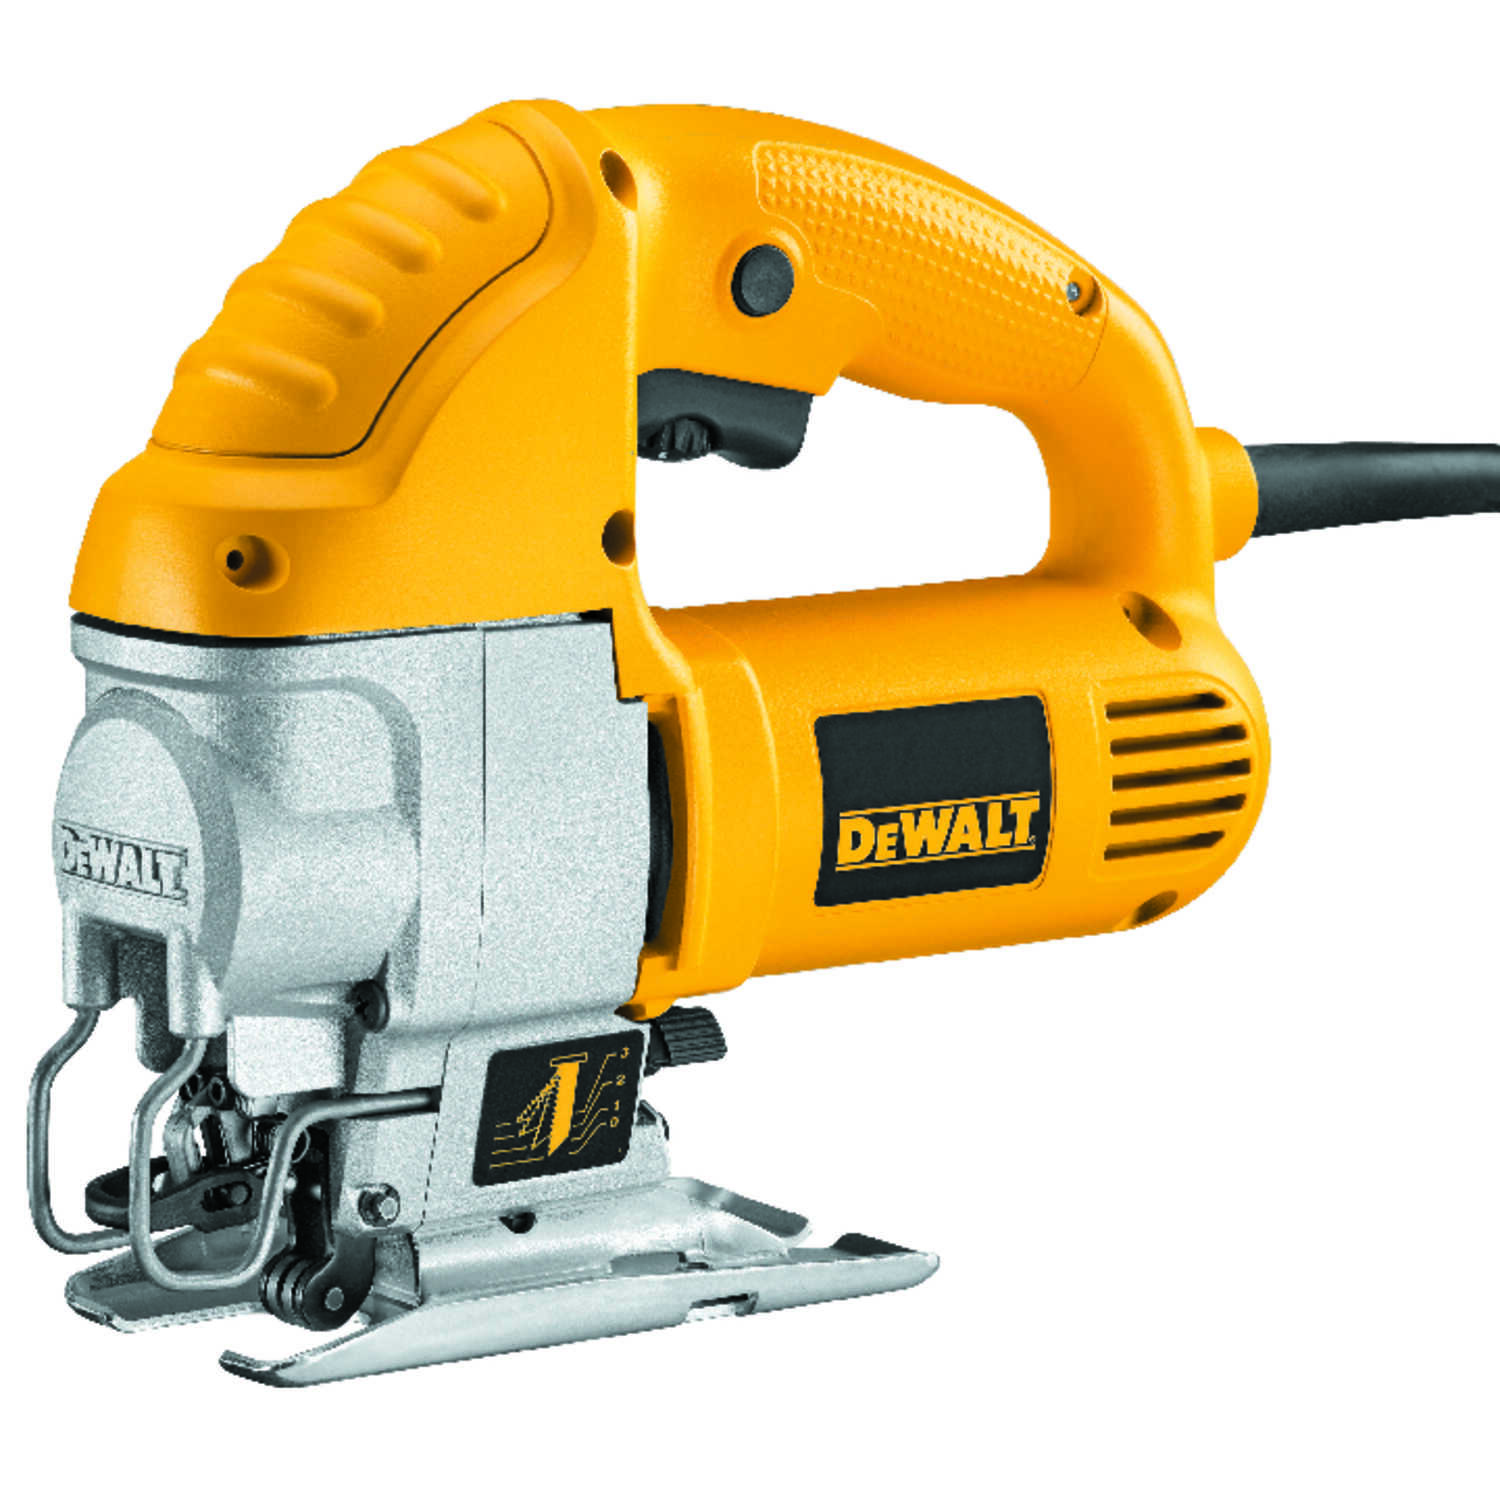 DeWalt  1 in. Corded  Keyless 120 volts 5.5 amps 0-3,100 spm Orbital Jig Saw